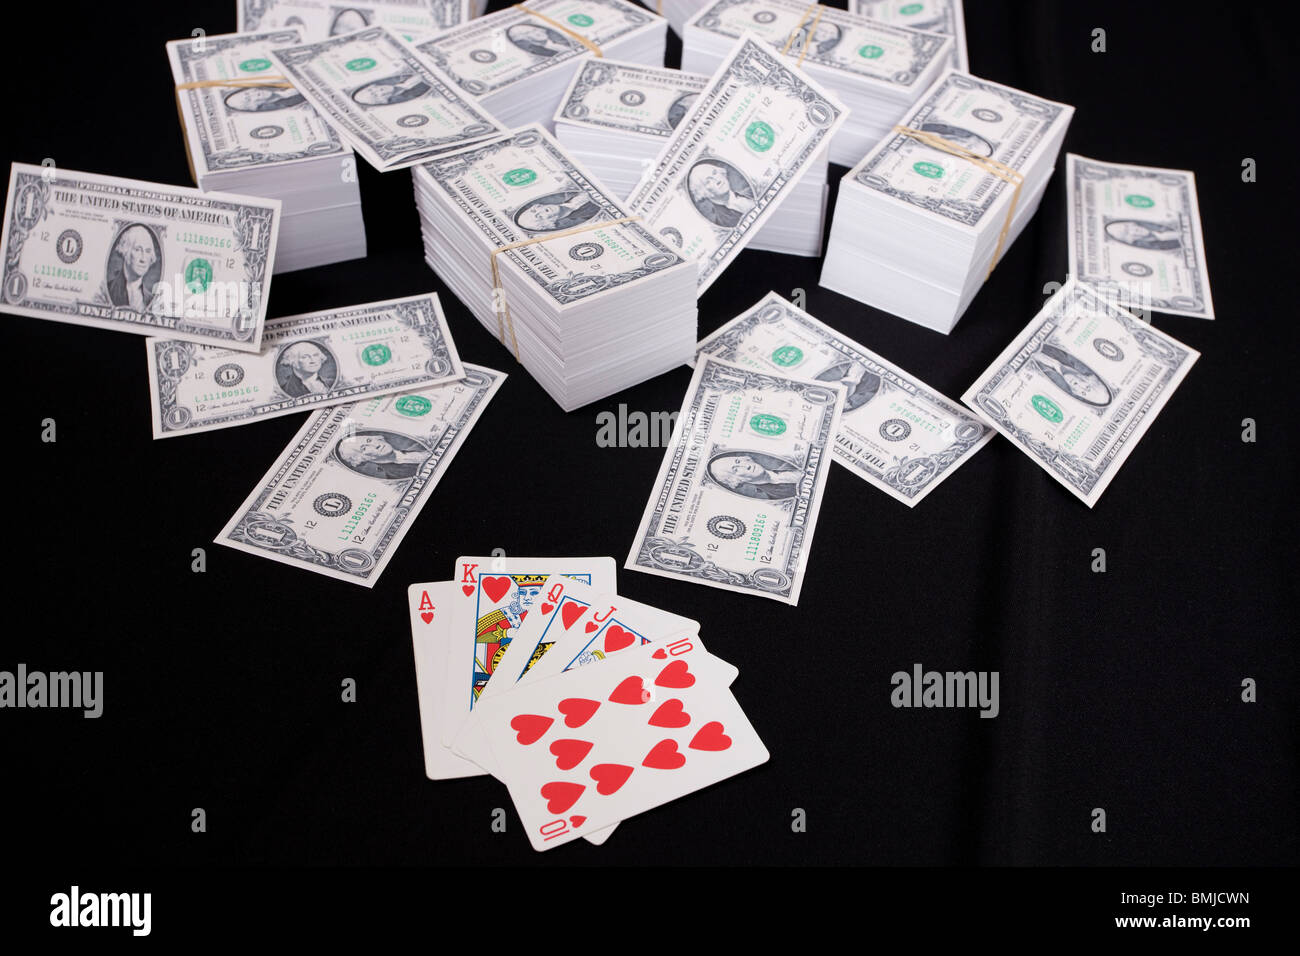 Piles Of Money And Cards - Stock Image